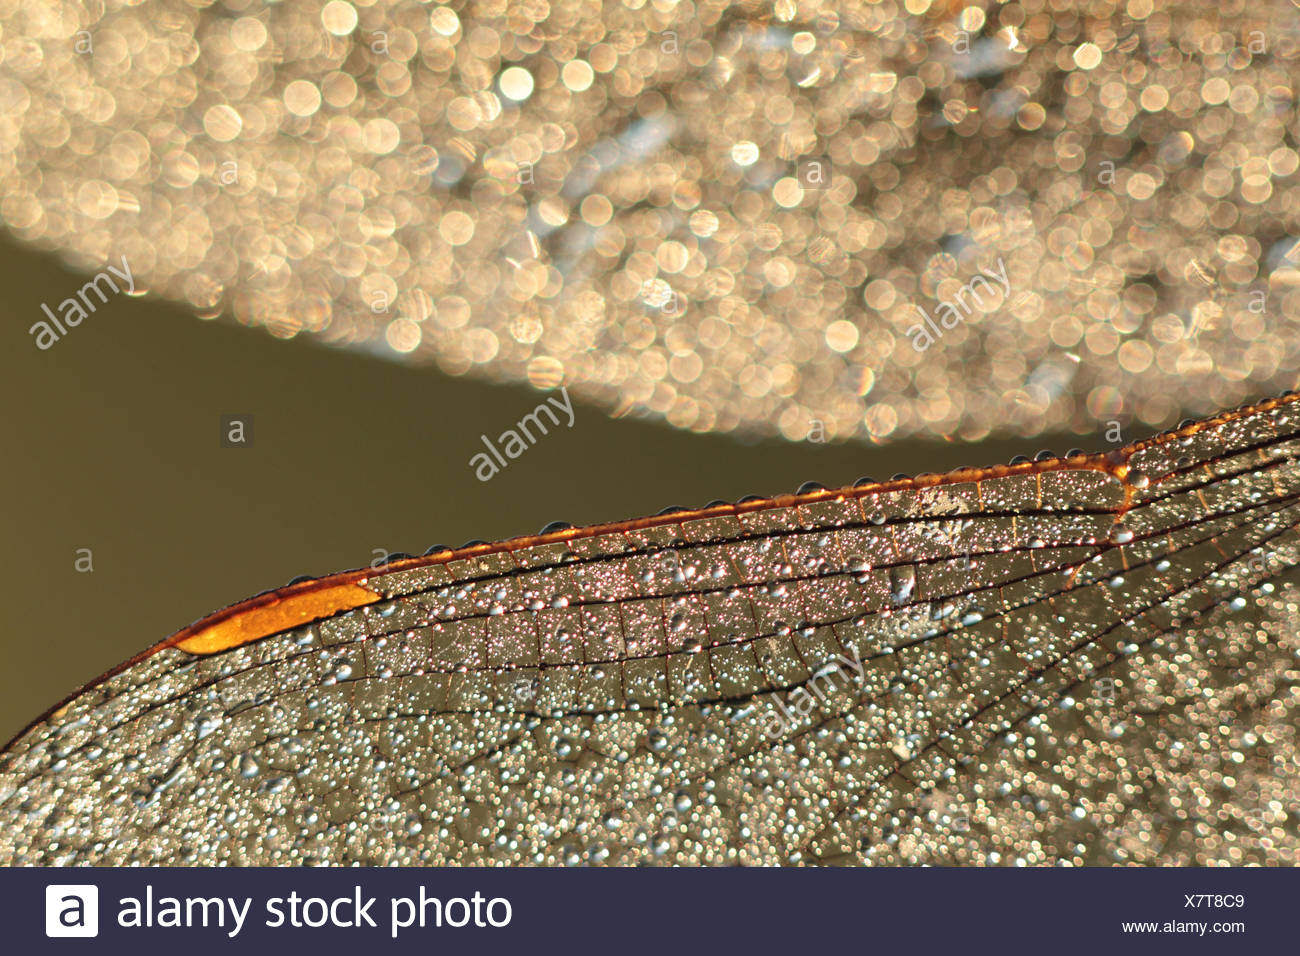 Dew-covered wings of a dragonfly in early morning backlight - Stock Image